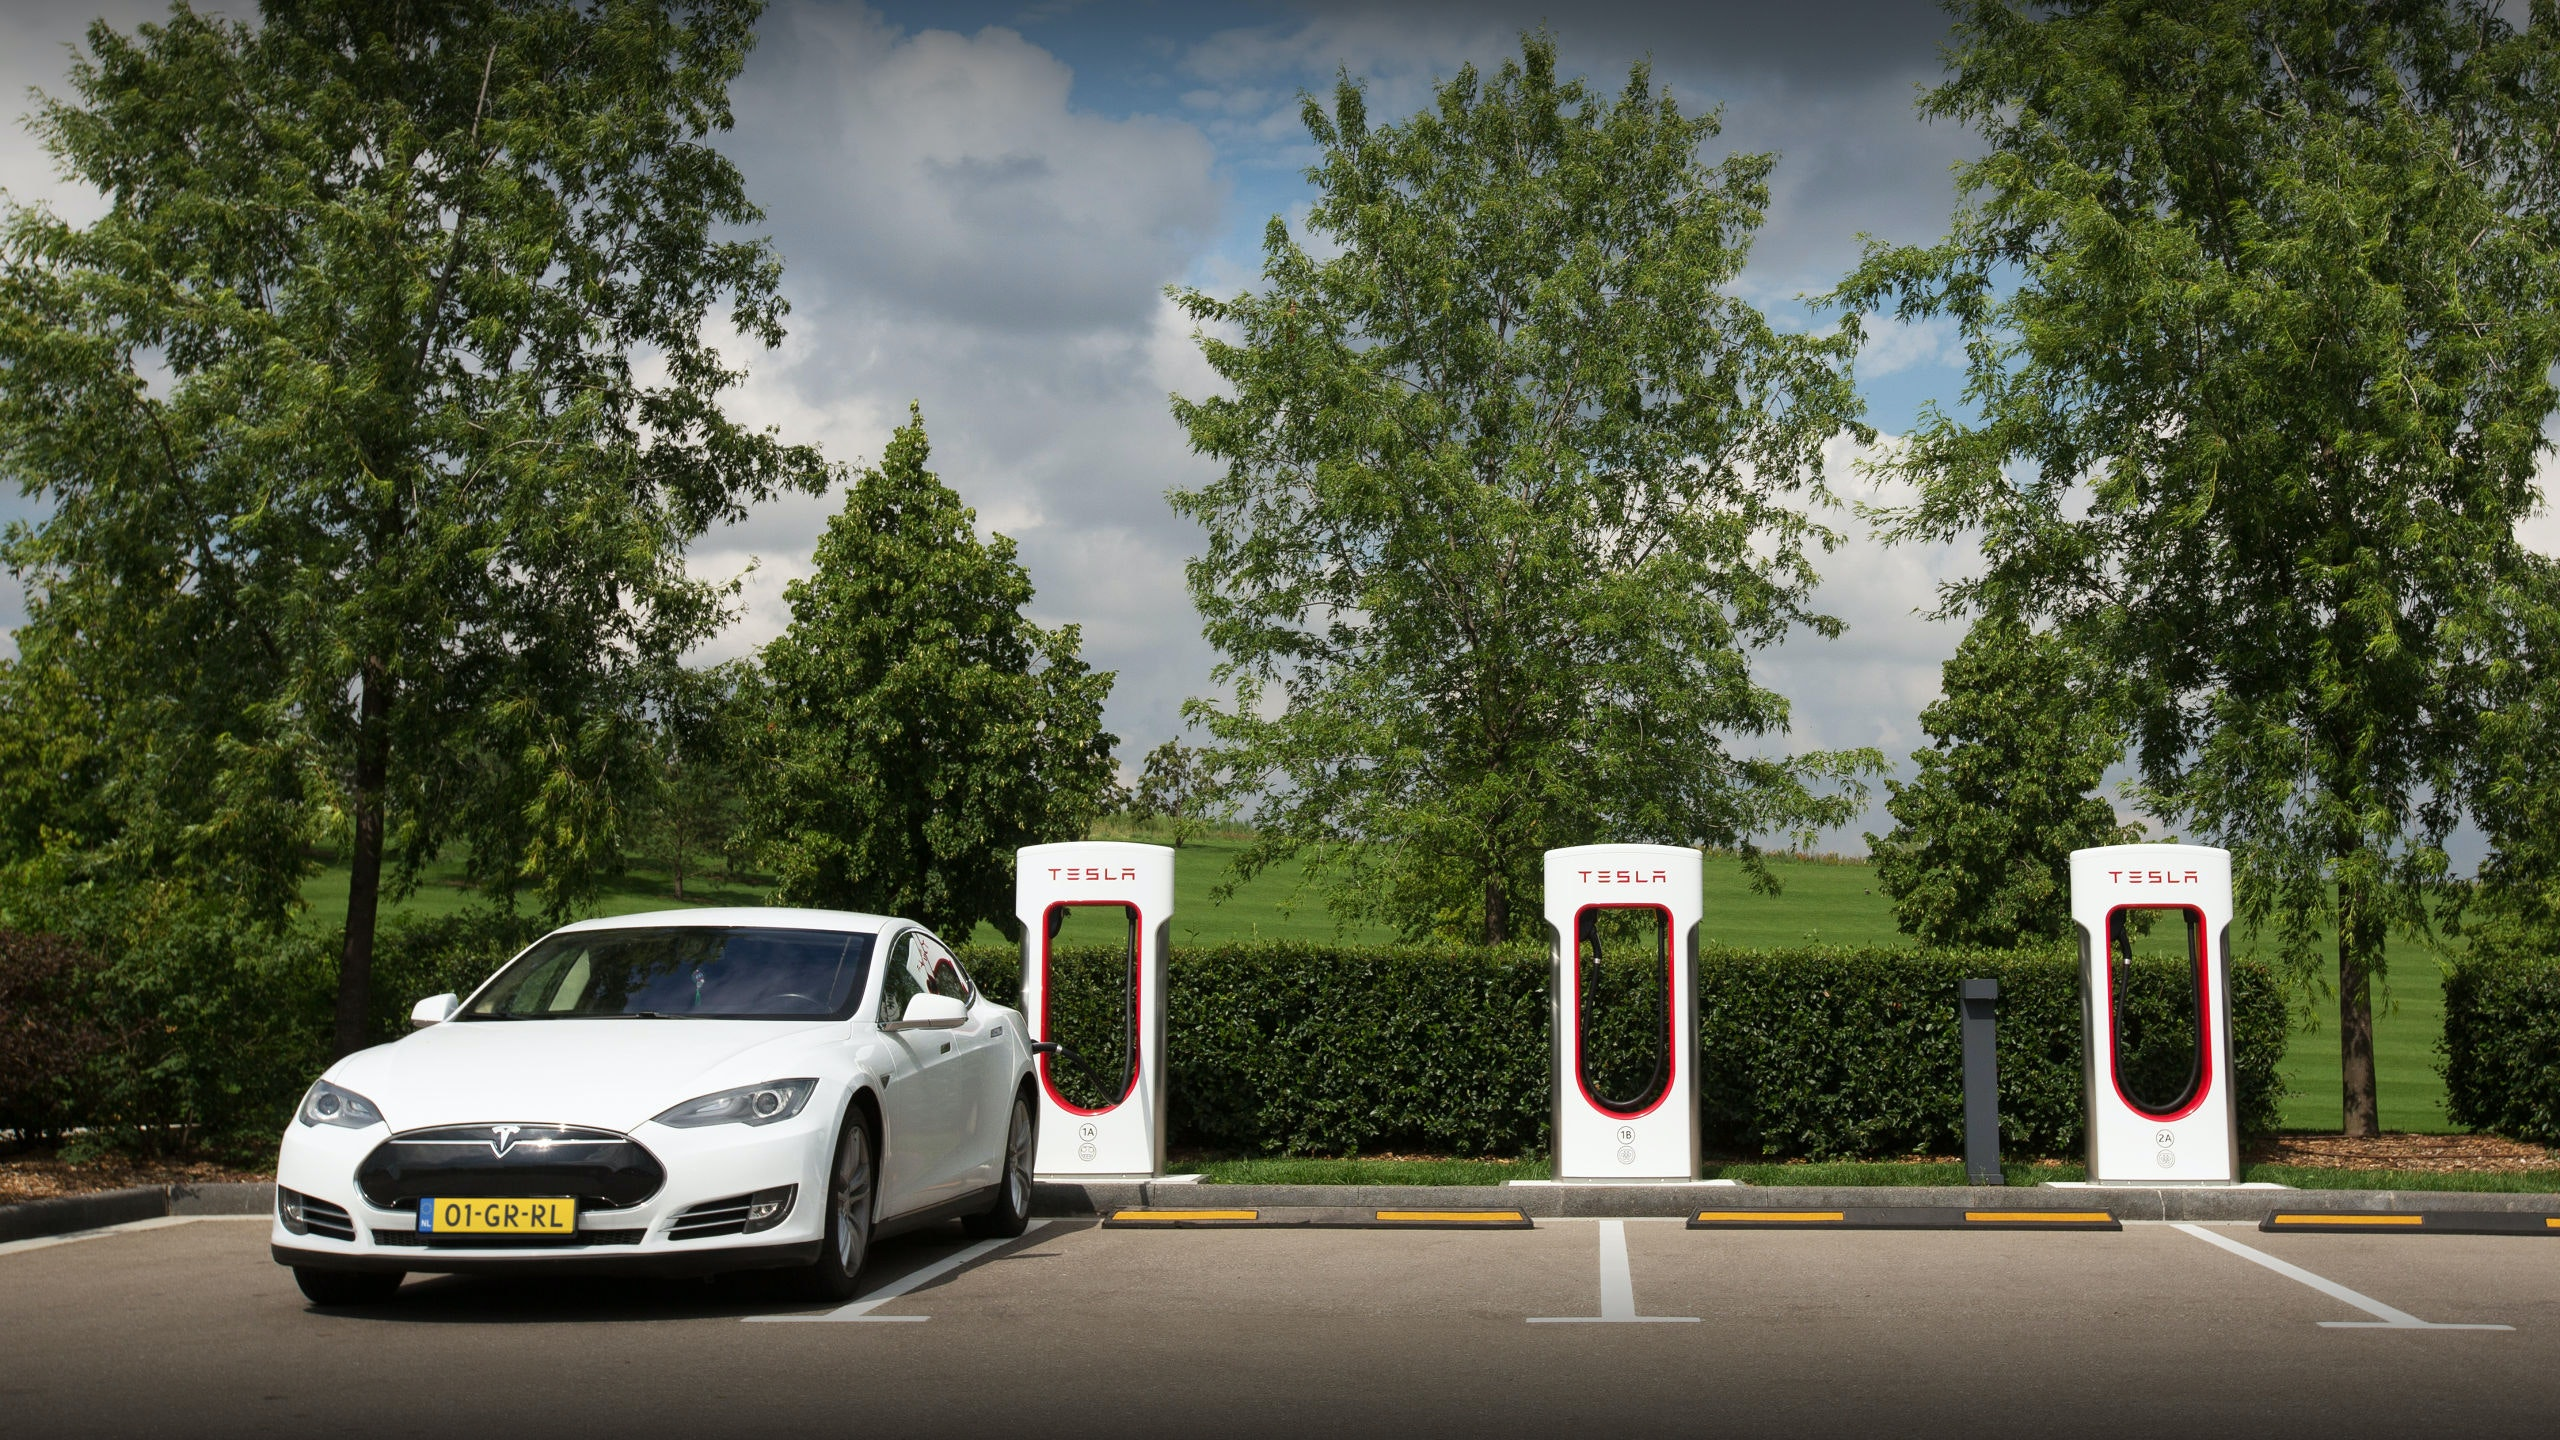 A Tesla Inc. Model S electric vehicle stands parked by Supercharger stations in Moscow, Russia, on Friday, July 20, 2018. Tesla may nearly double the number of cars it's selling in Russia after a mobile-phone retailer backed by billionaire Alisher Usmanov unexpectedly added electric vehicles to the line of gadgets it offers. MegaFon PJSC, said it received orders for 236 vehicles in June, the first month it started sales jointly with importer Moscow Tesla Club. Photographer: Andrey Rudakov/Bloomberg